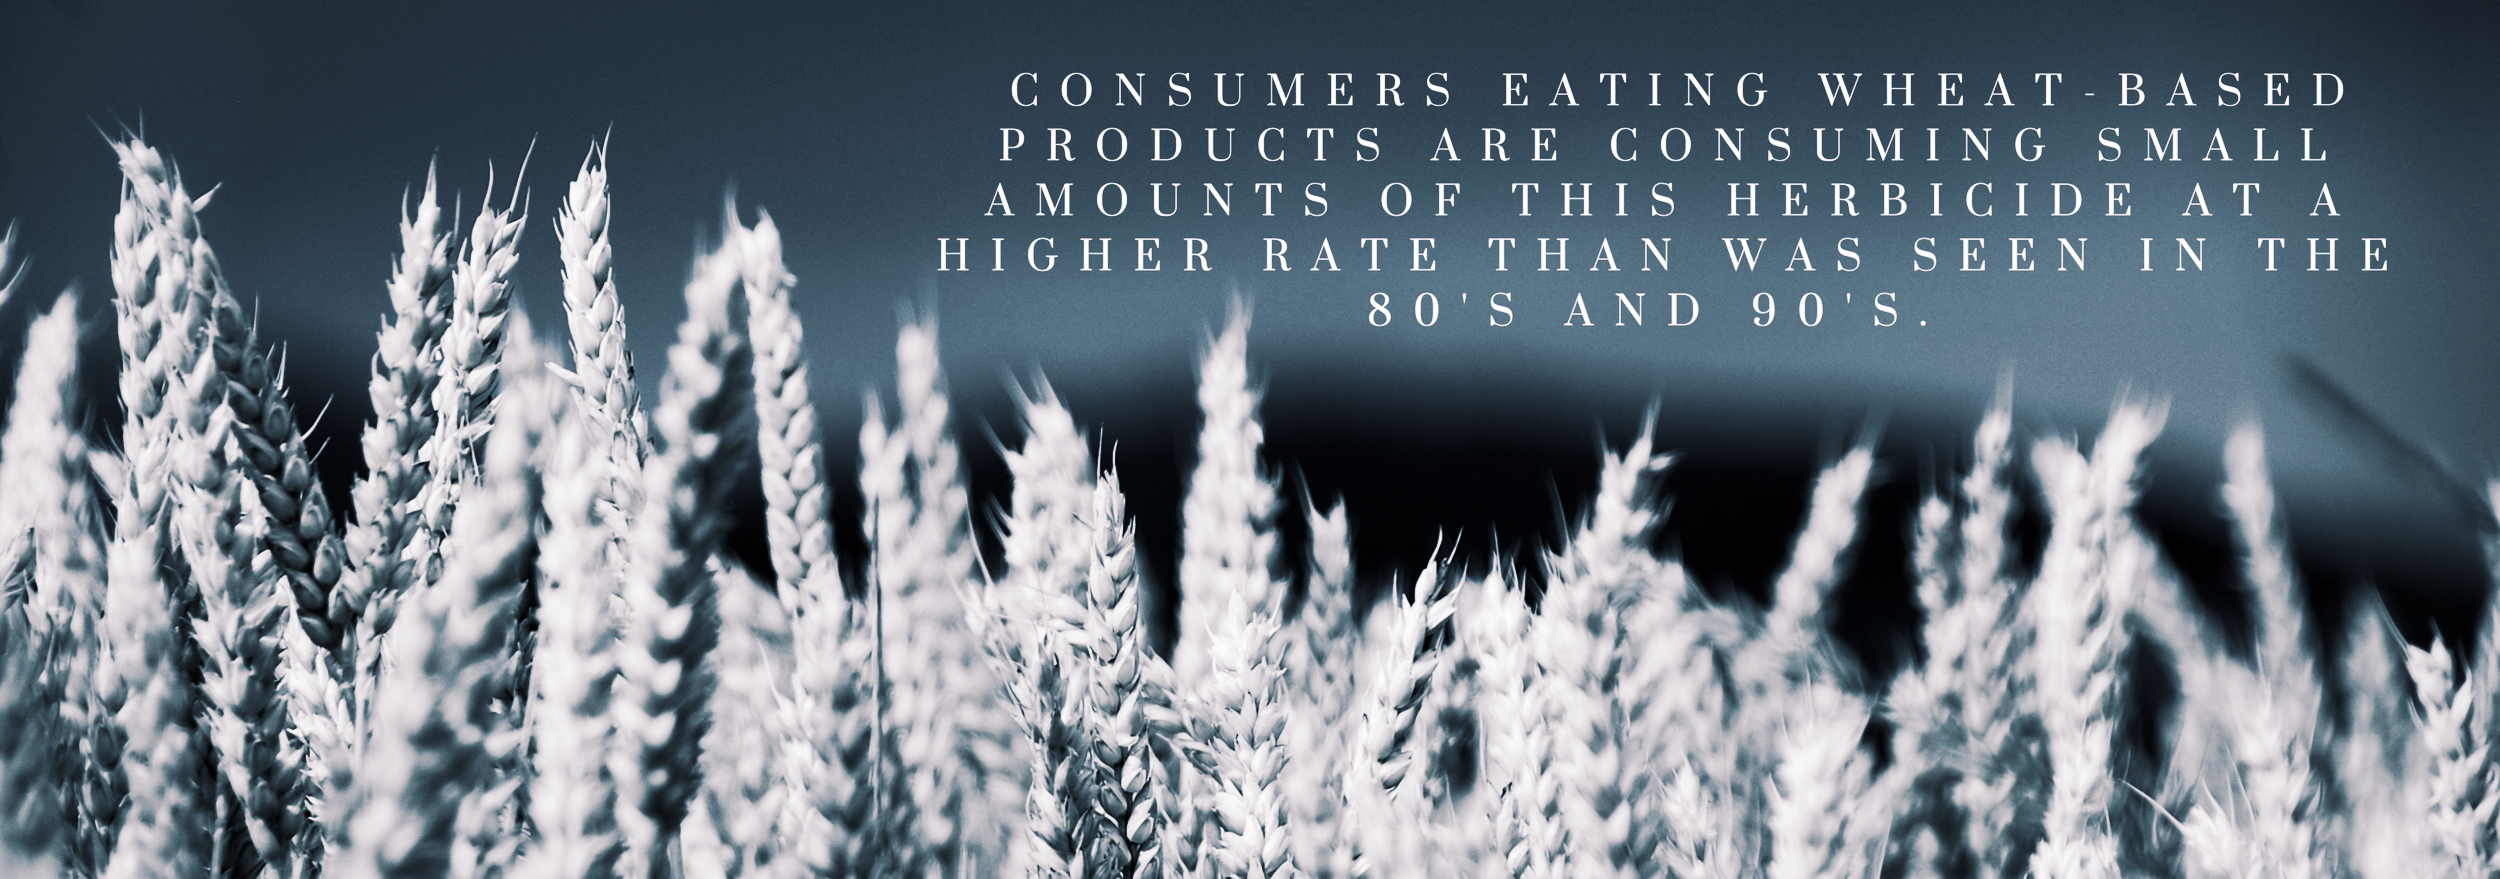 What this means for us is more chemical residue on the products that are sold and used to make the food we eat everyday. Consumers eating wheat-based products are consuming small amounts of this herbicide at a highe.png